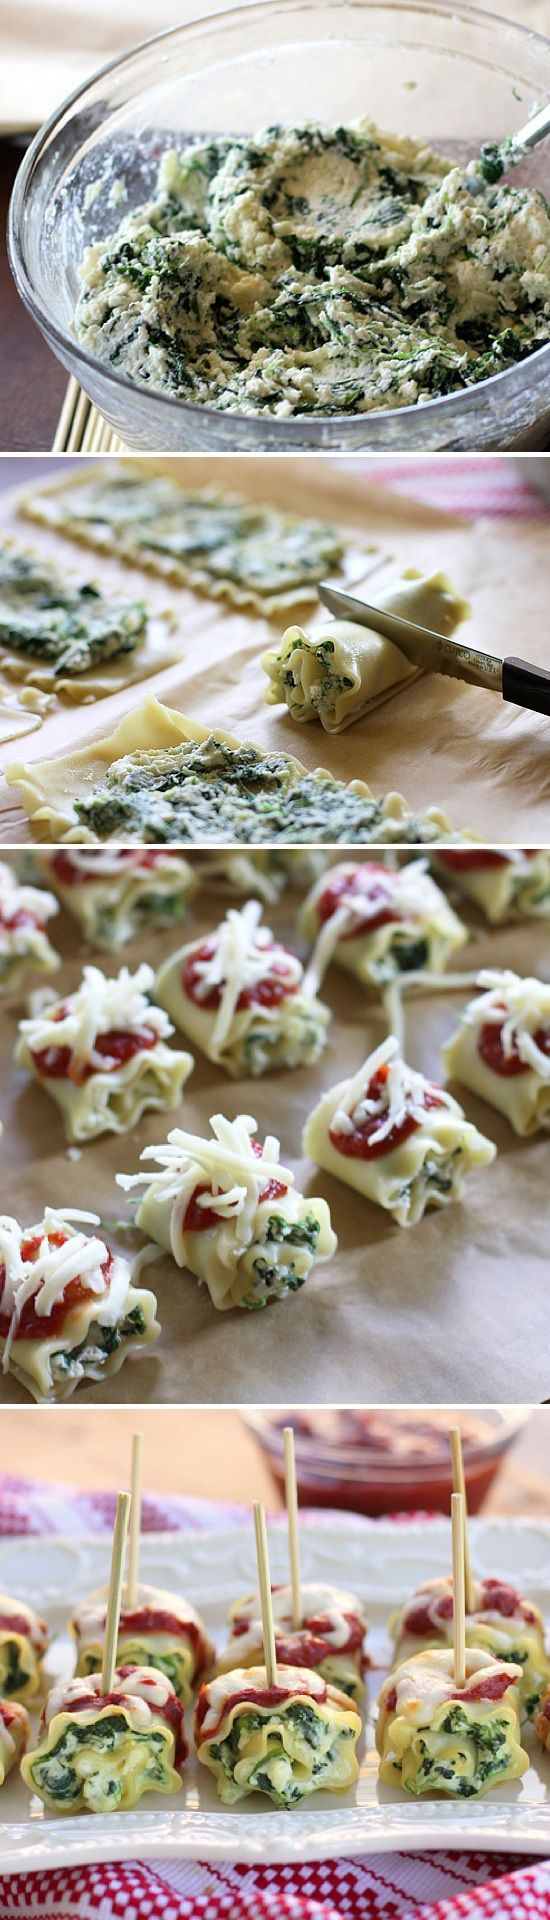 Mini Lasagna Rolls -  INGREDIENTS(11):  lasagna noodles, frozen spinach, ricotta cheese, Parmesan cheese, egg, minced garlic, Italian seasonings, salt, pepper, pizza sauce, mozzarella cheese  #vegetarian